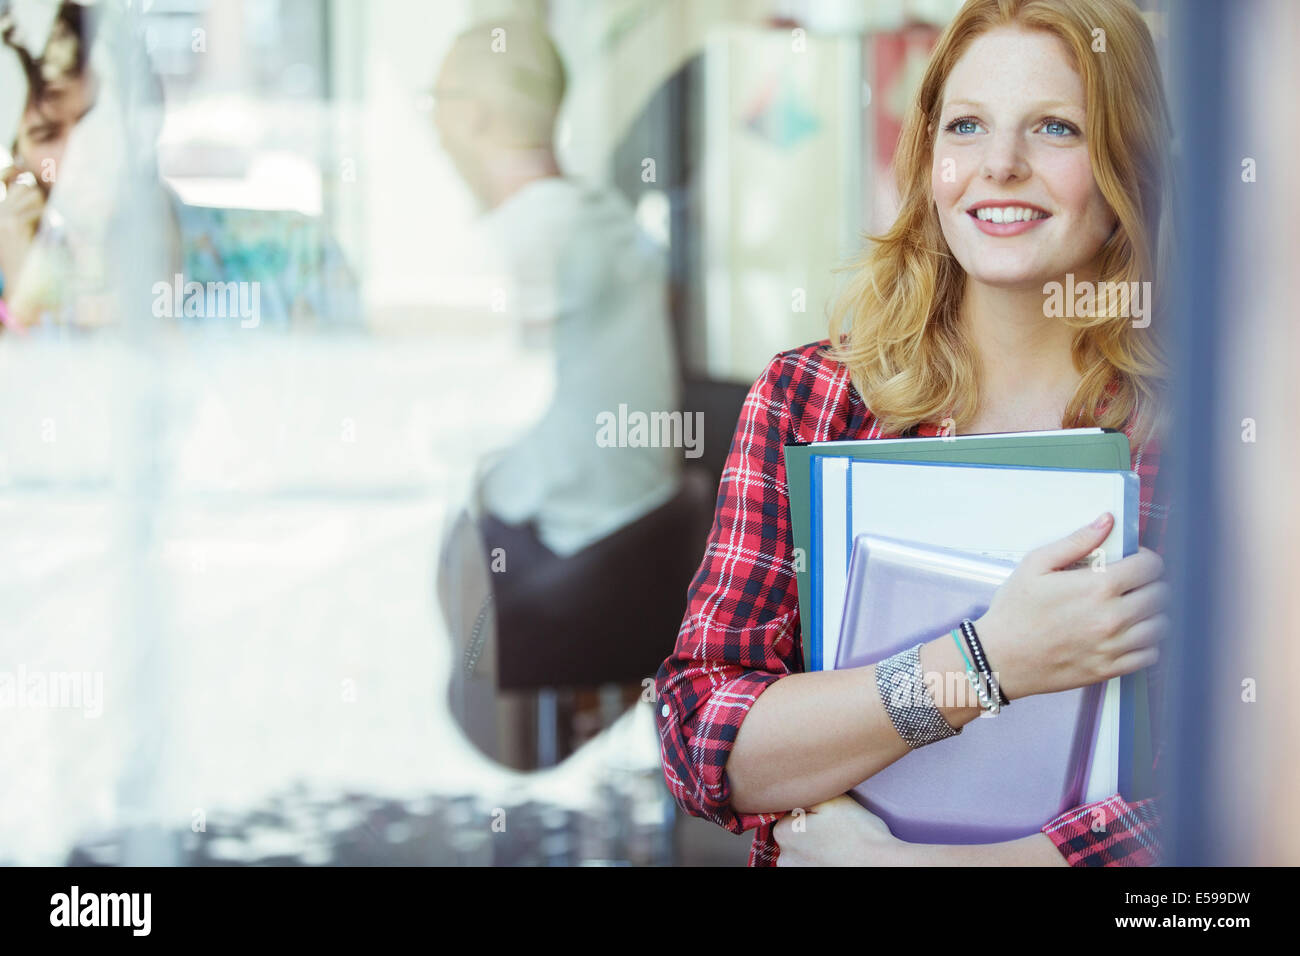 Woman carrying binders outdoors - Stock Image